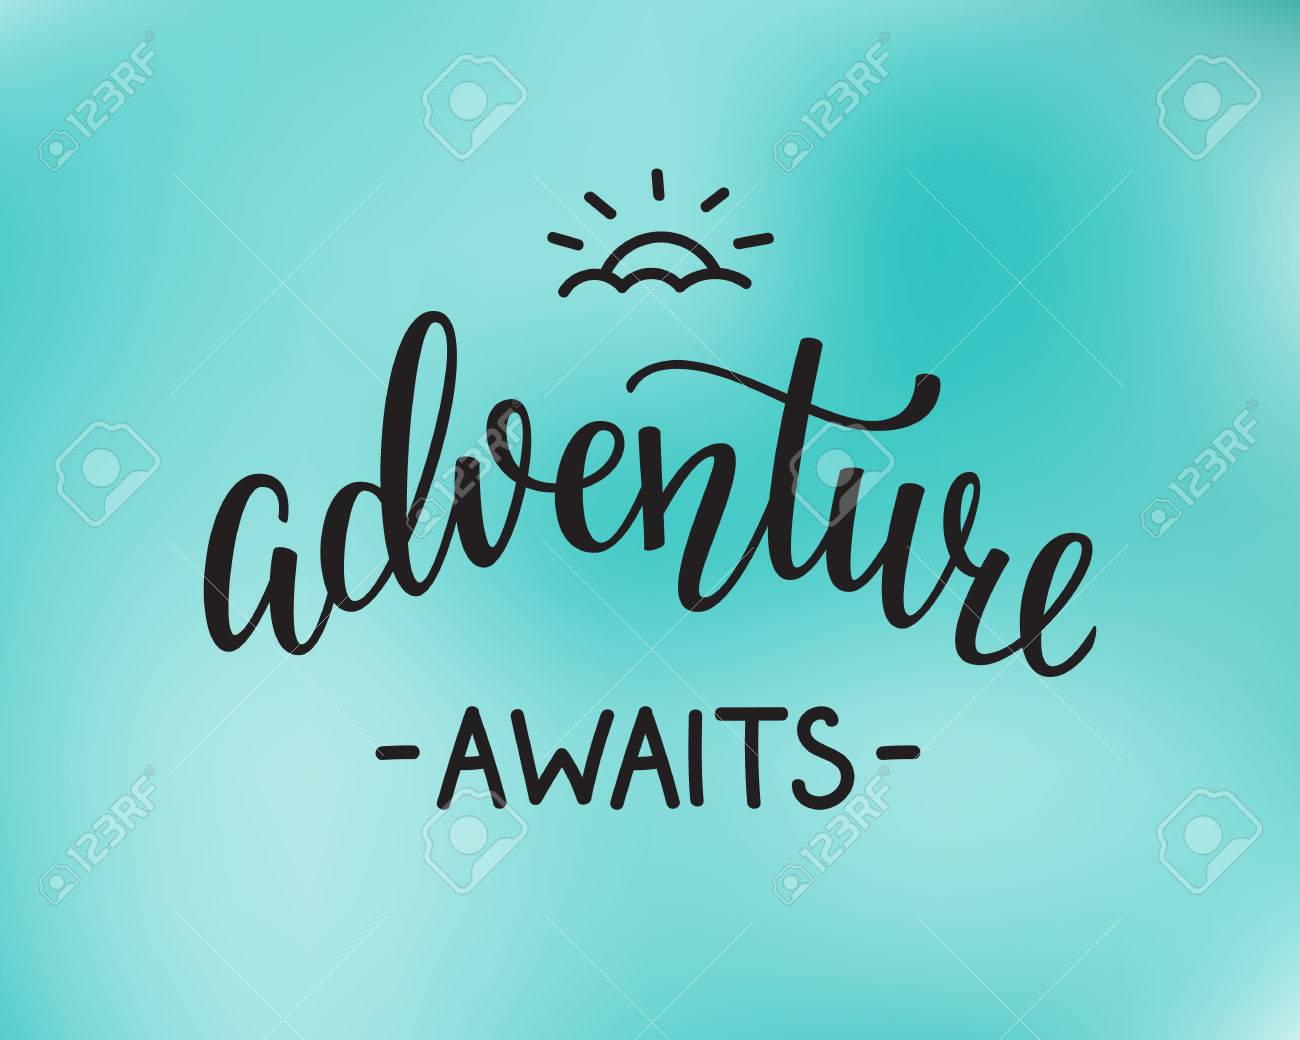 The Adventure Awaits Life Style Inspiration Quotes Lettering